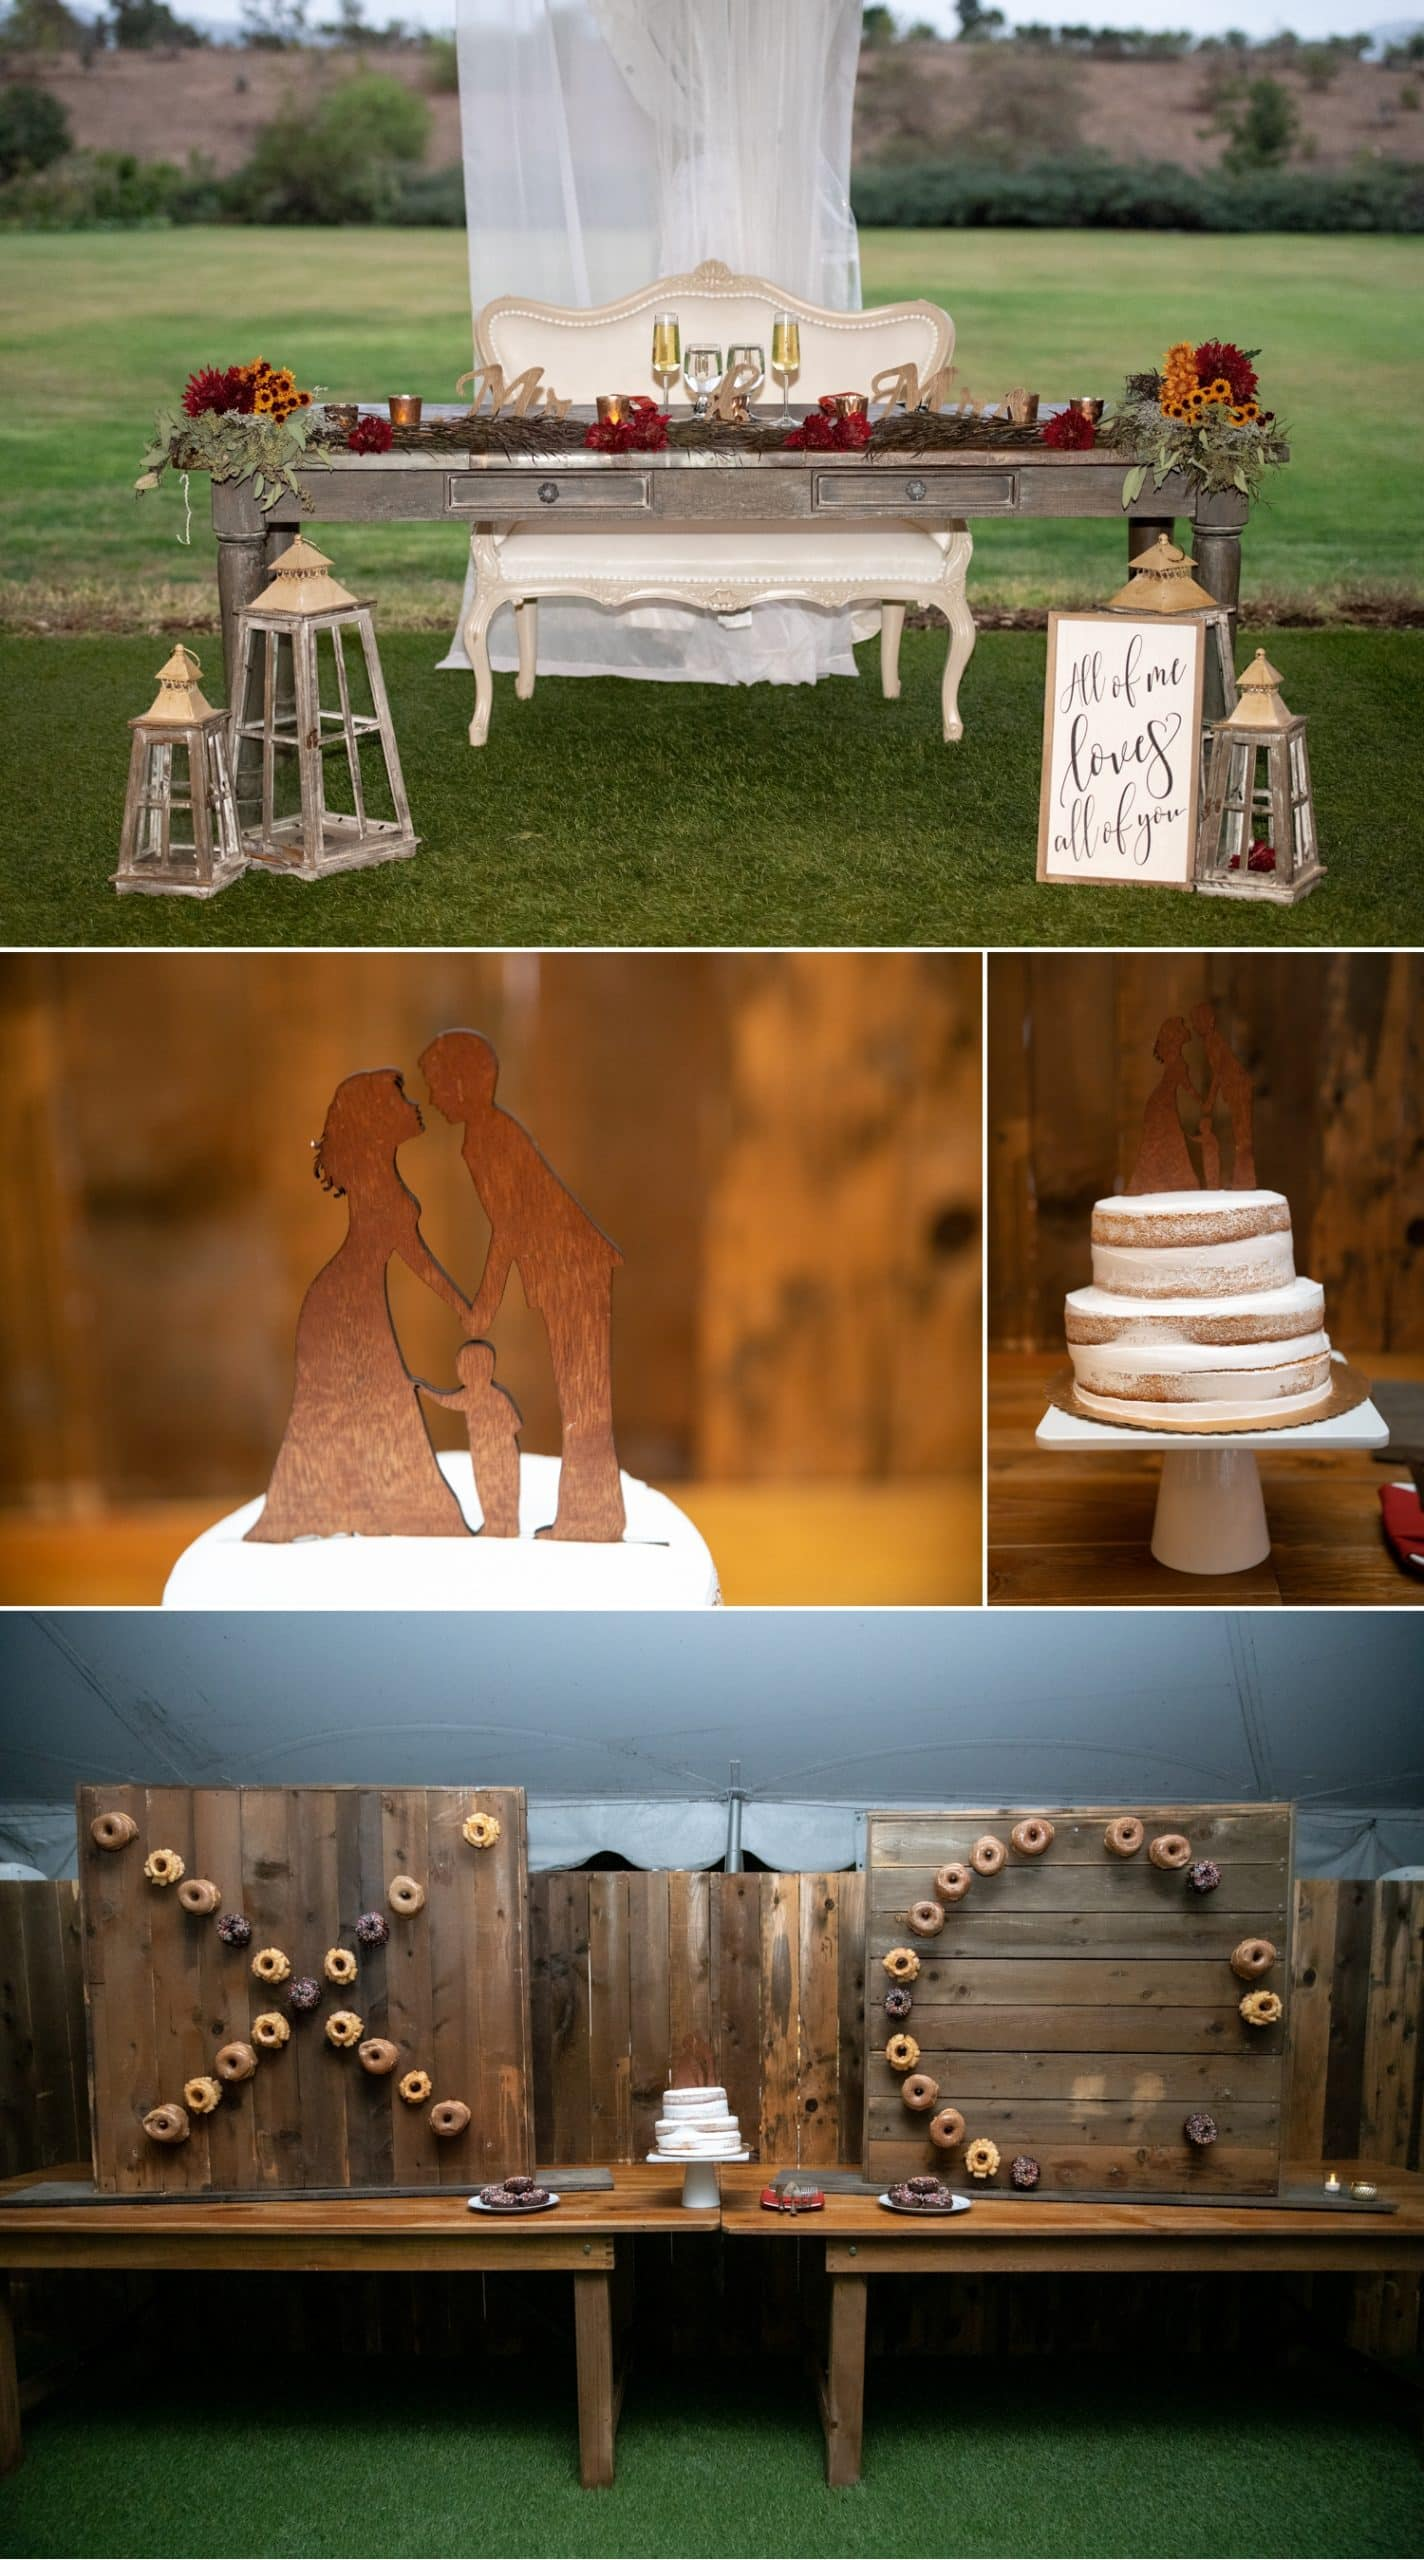 Sweetheart table and cake table at Ethereal Gardens.